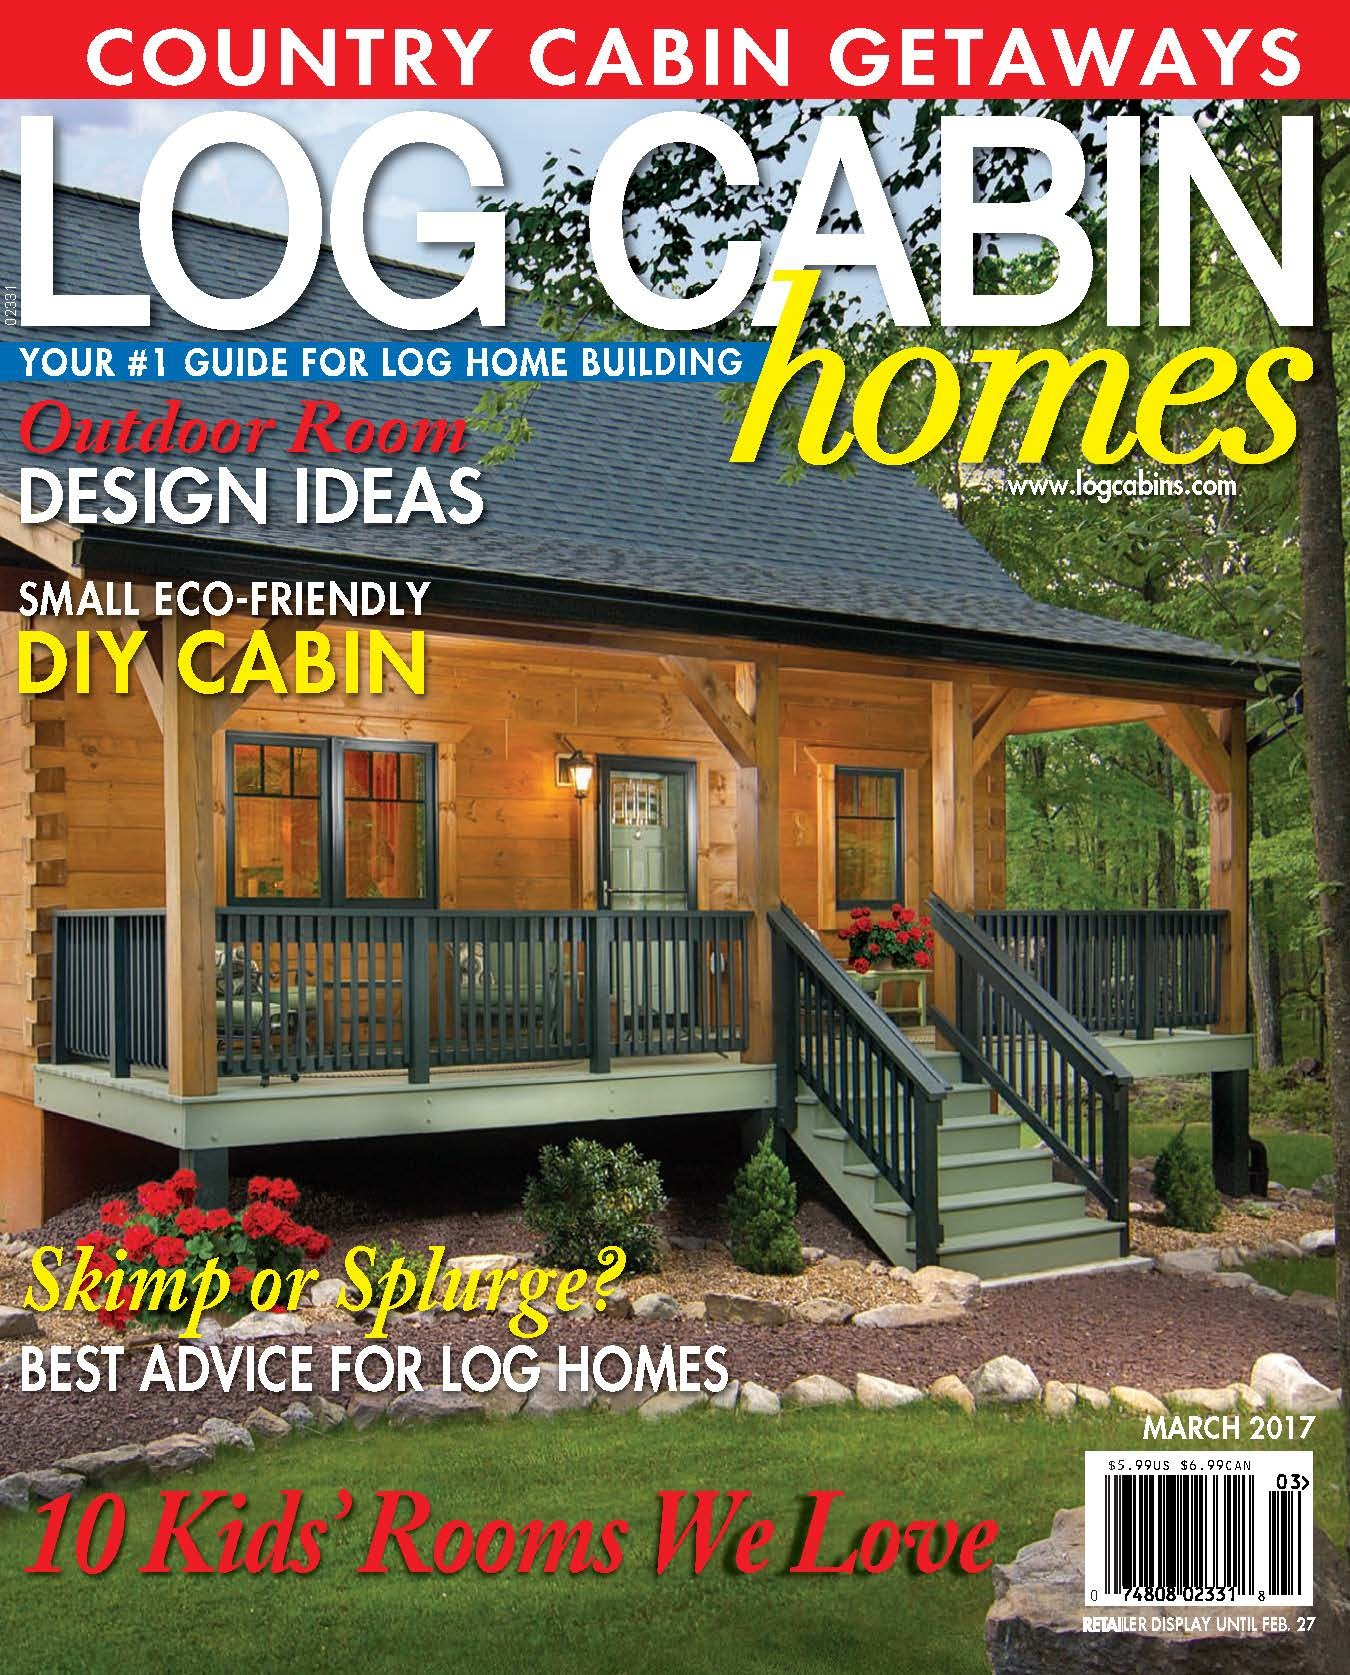 Beau Log Cabin Homes Cover, Log Cabin Homes Tour, Log Homes, Log Cabin Homes